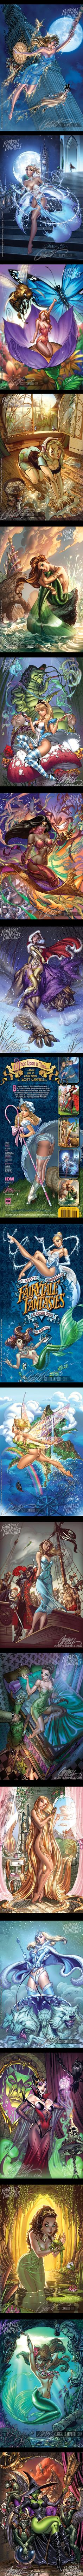 """Fairy Tale Fantasies"" is the new 2012 sexy calendar of the Disney Princesses Pin-Ups by the great illustrator J. Scott Campbell. Beautiful of course"